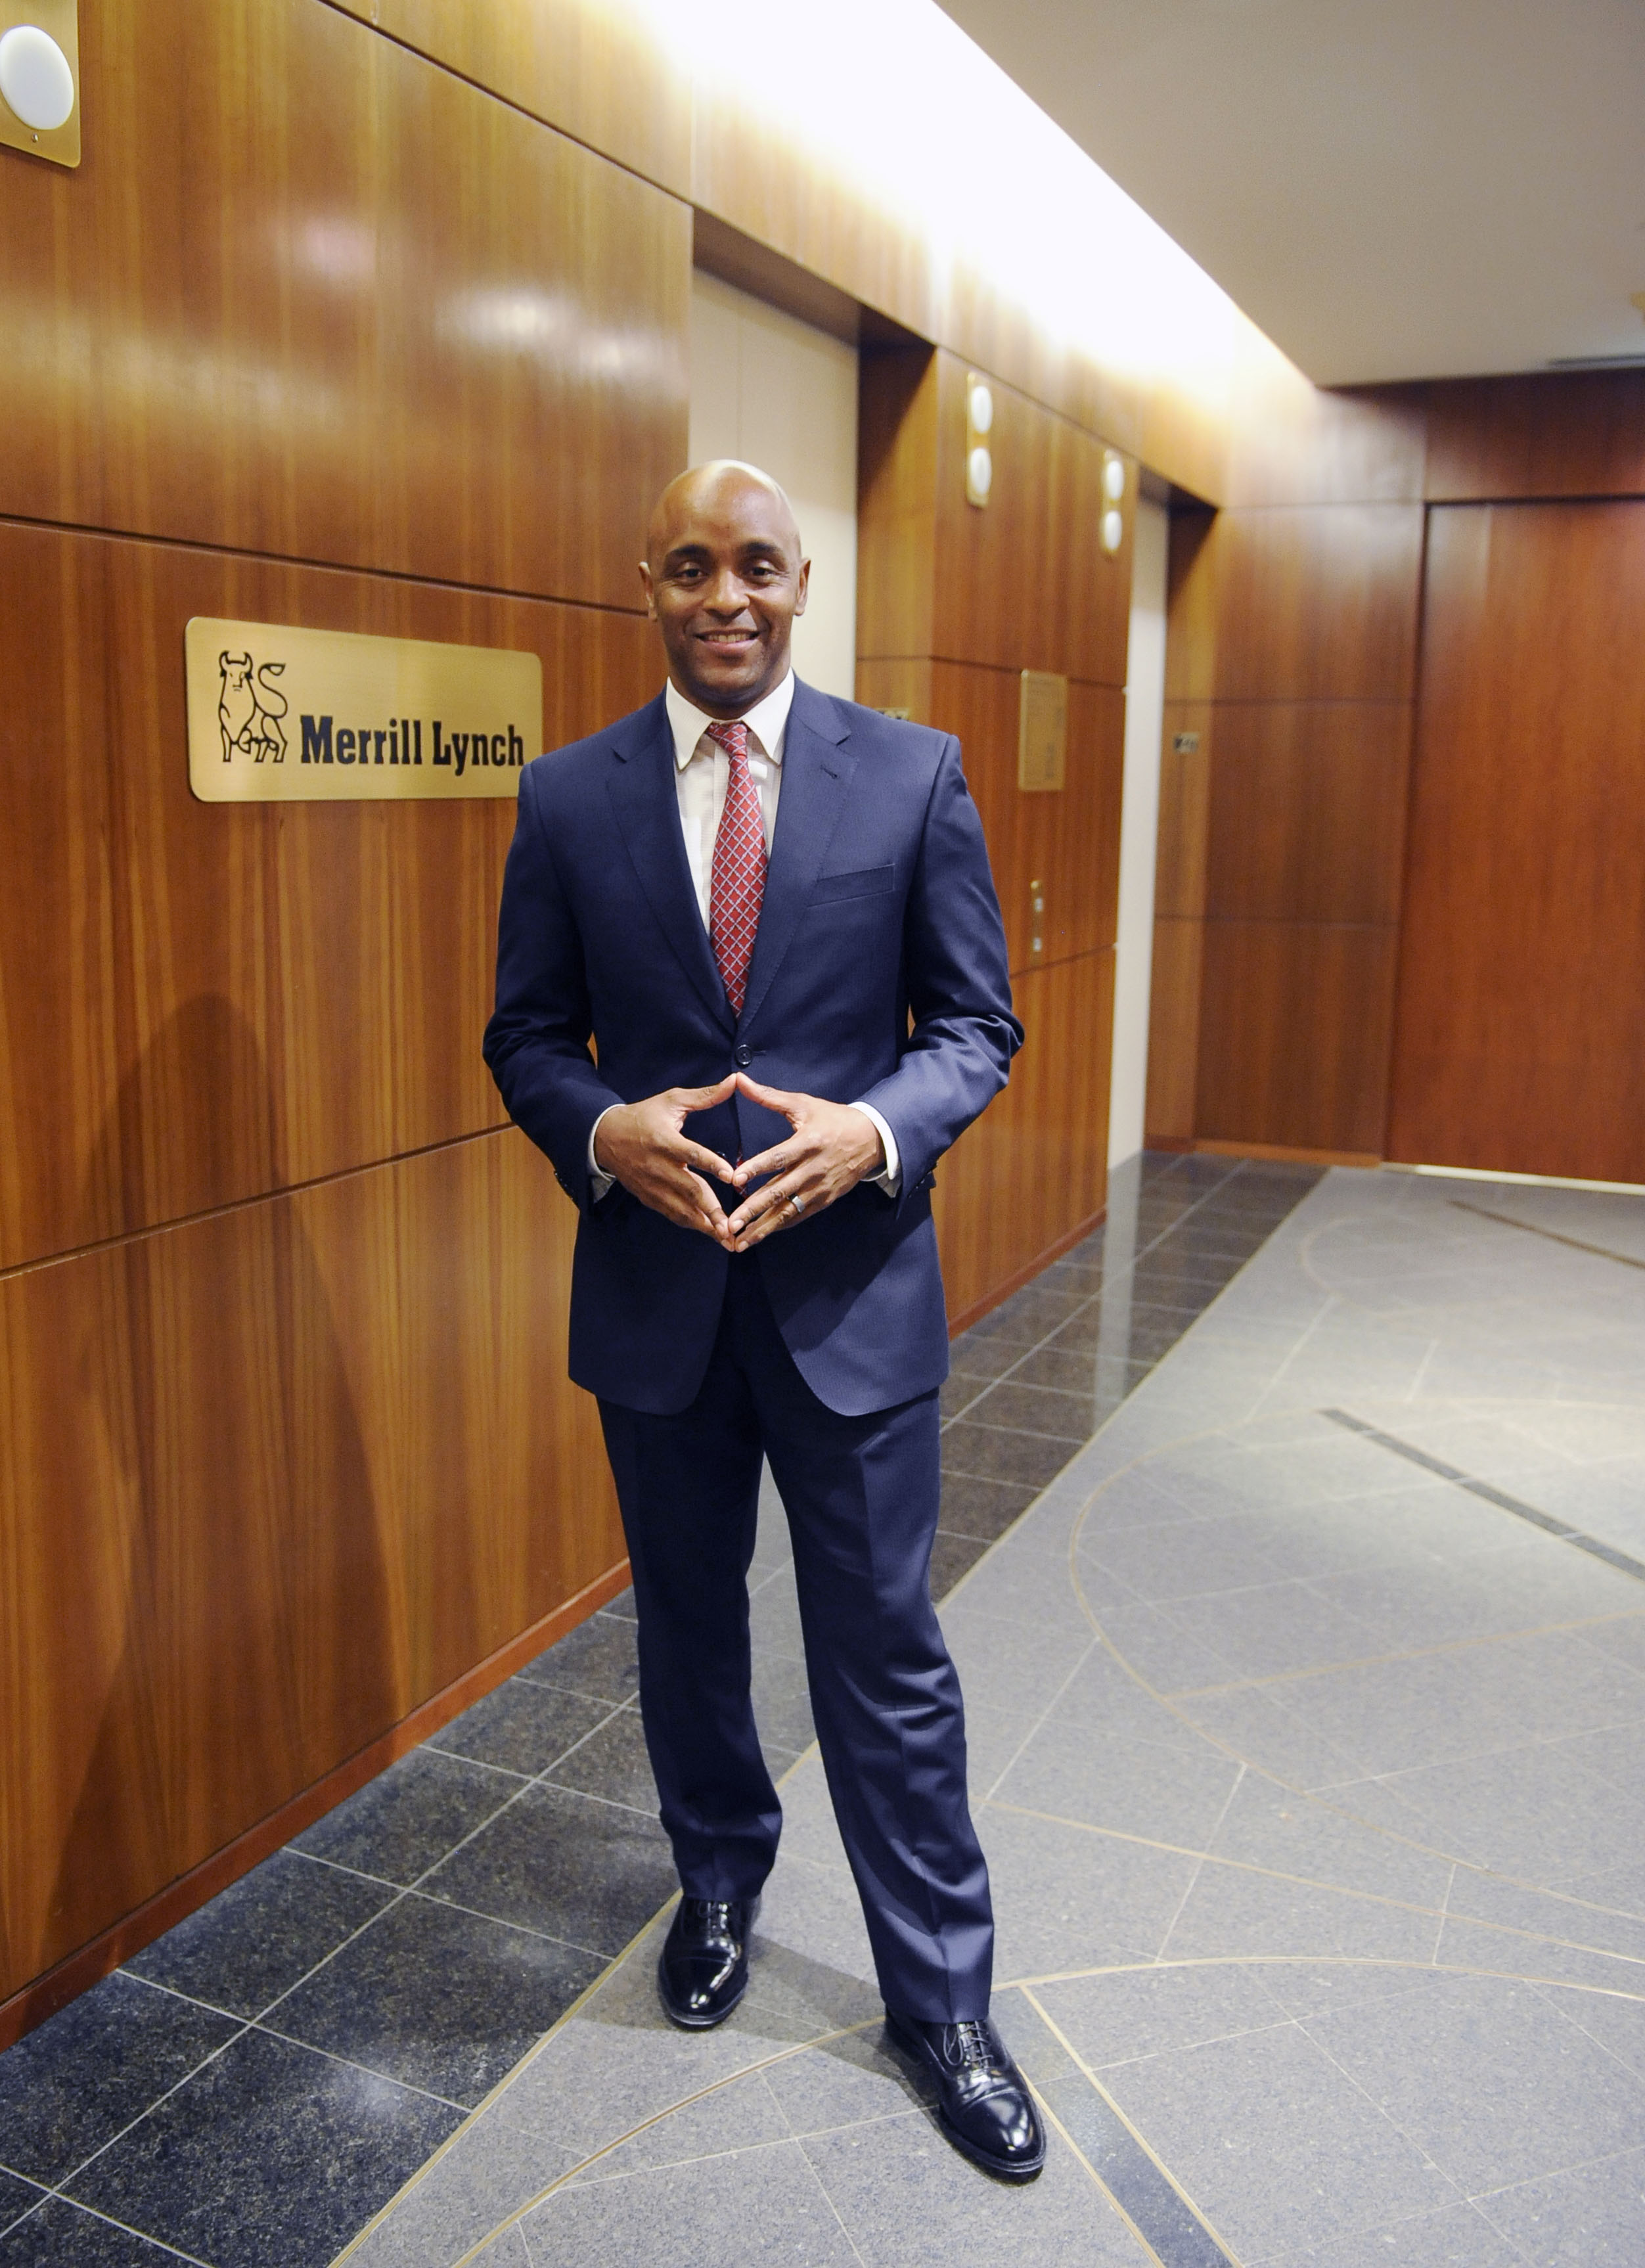 At First Glance, Bank Of America Merrill Lynch Executive Craig Young Is  Exactly As You Would Imagine A Coach And Corporate Manager To Be.